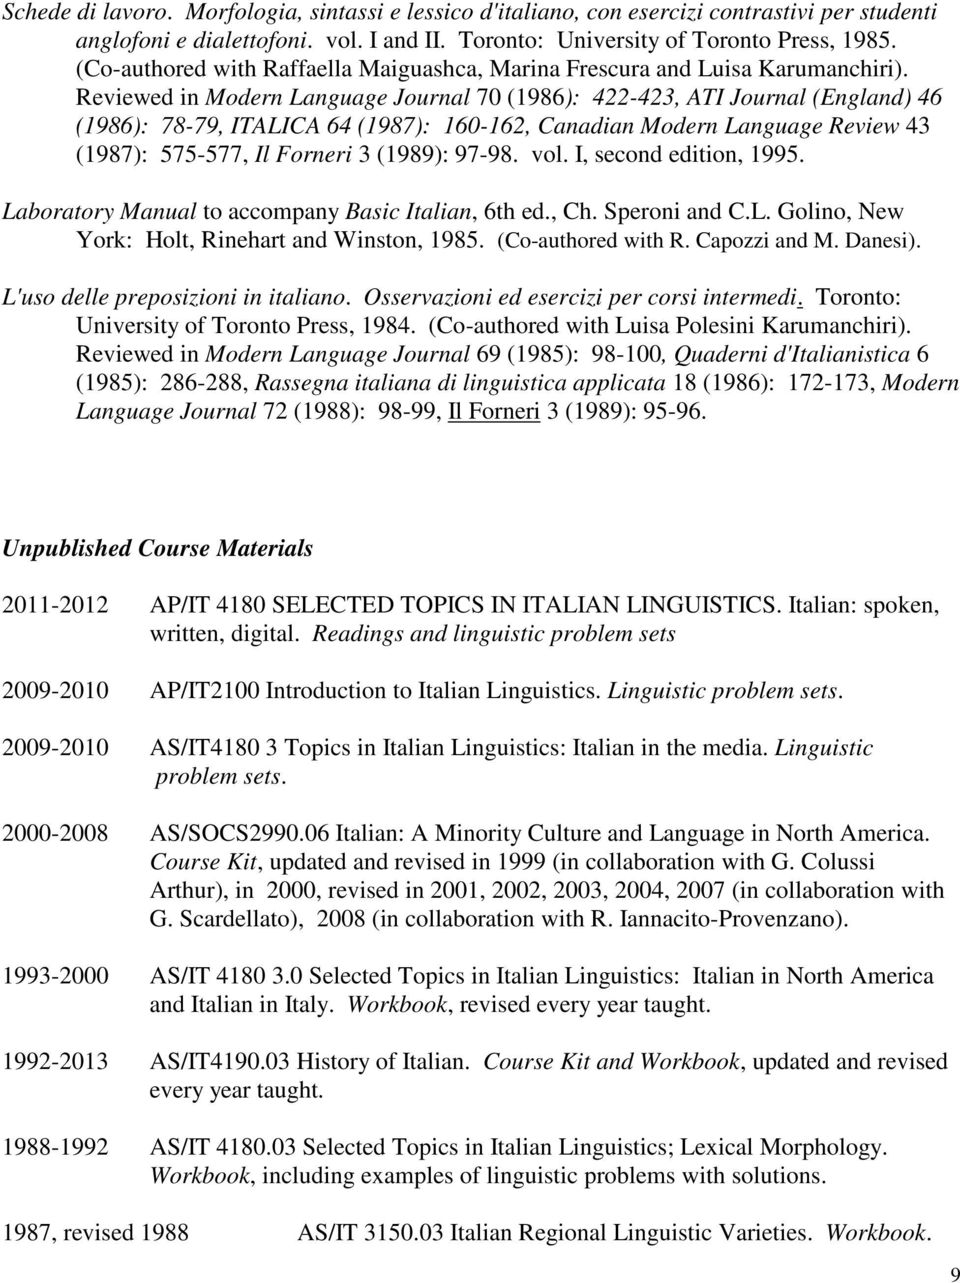 Reviewed in Modern Language Journal 70 (1986): 422-423, ATI Journal (England) 46 (1986): 78-79, ITALICA 64 (1987): 160-162, Canadian Modern Language Review 43 (1987): 575-577, Il Forneri 3 (1989):